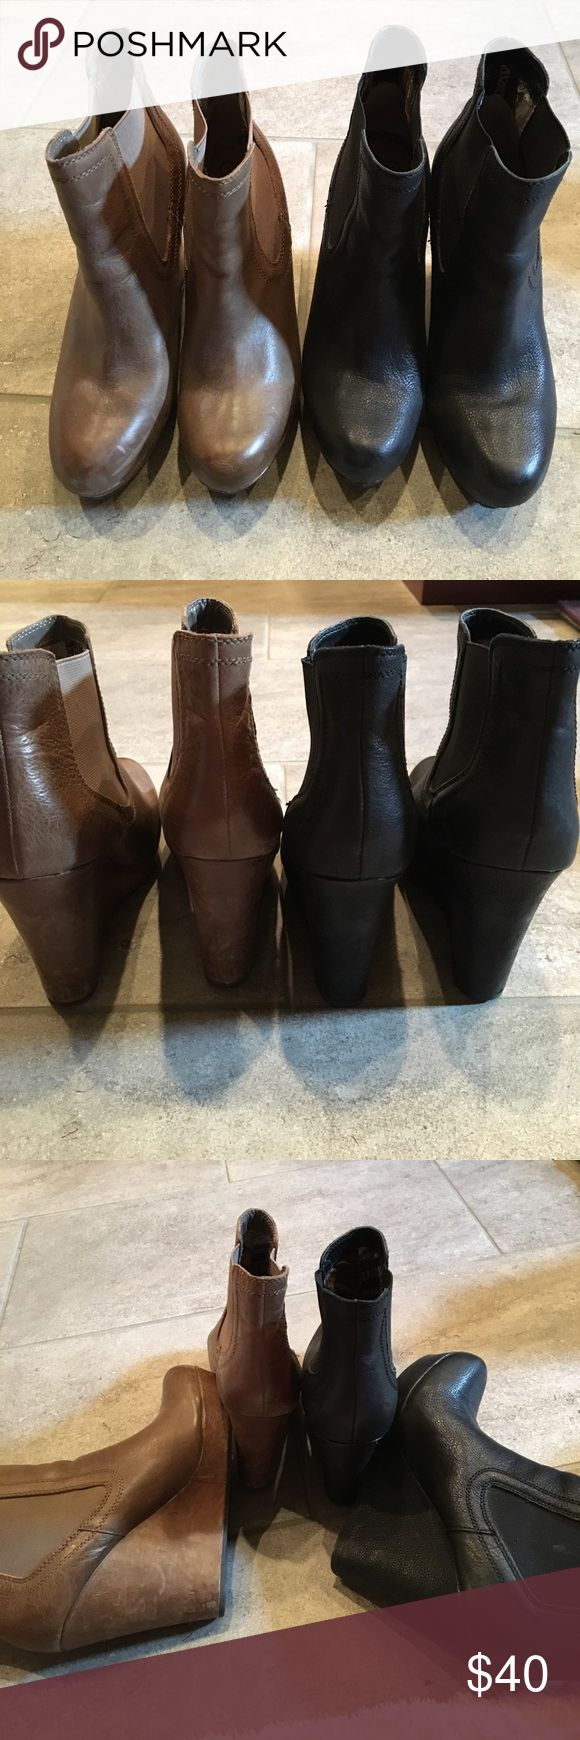 2 pair of Seychelles wedge booties.  S-9 Good condition!!  I will separate them if you want. Seychelles Shoes Ankle Boots & Booties